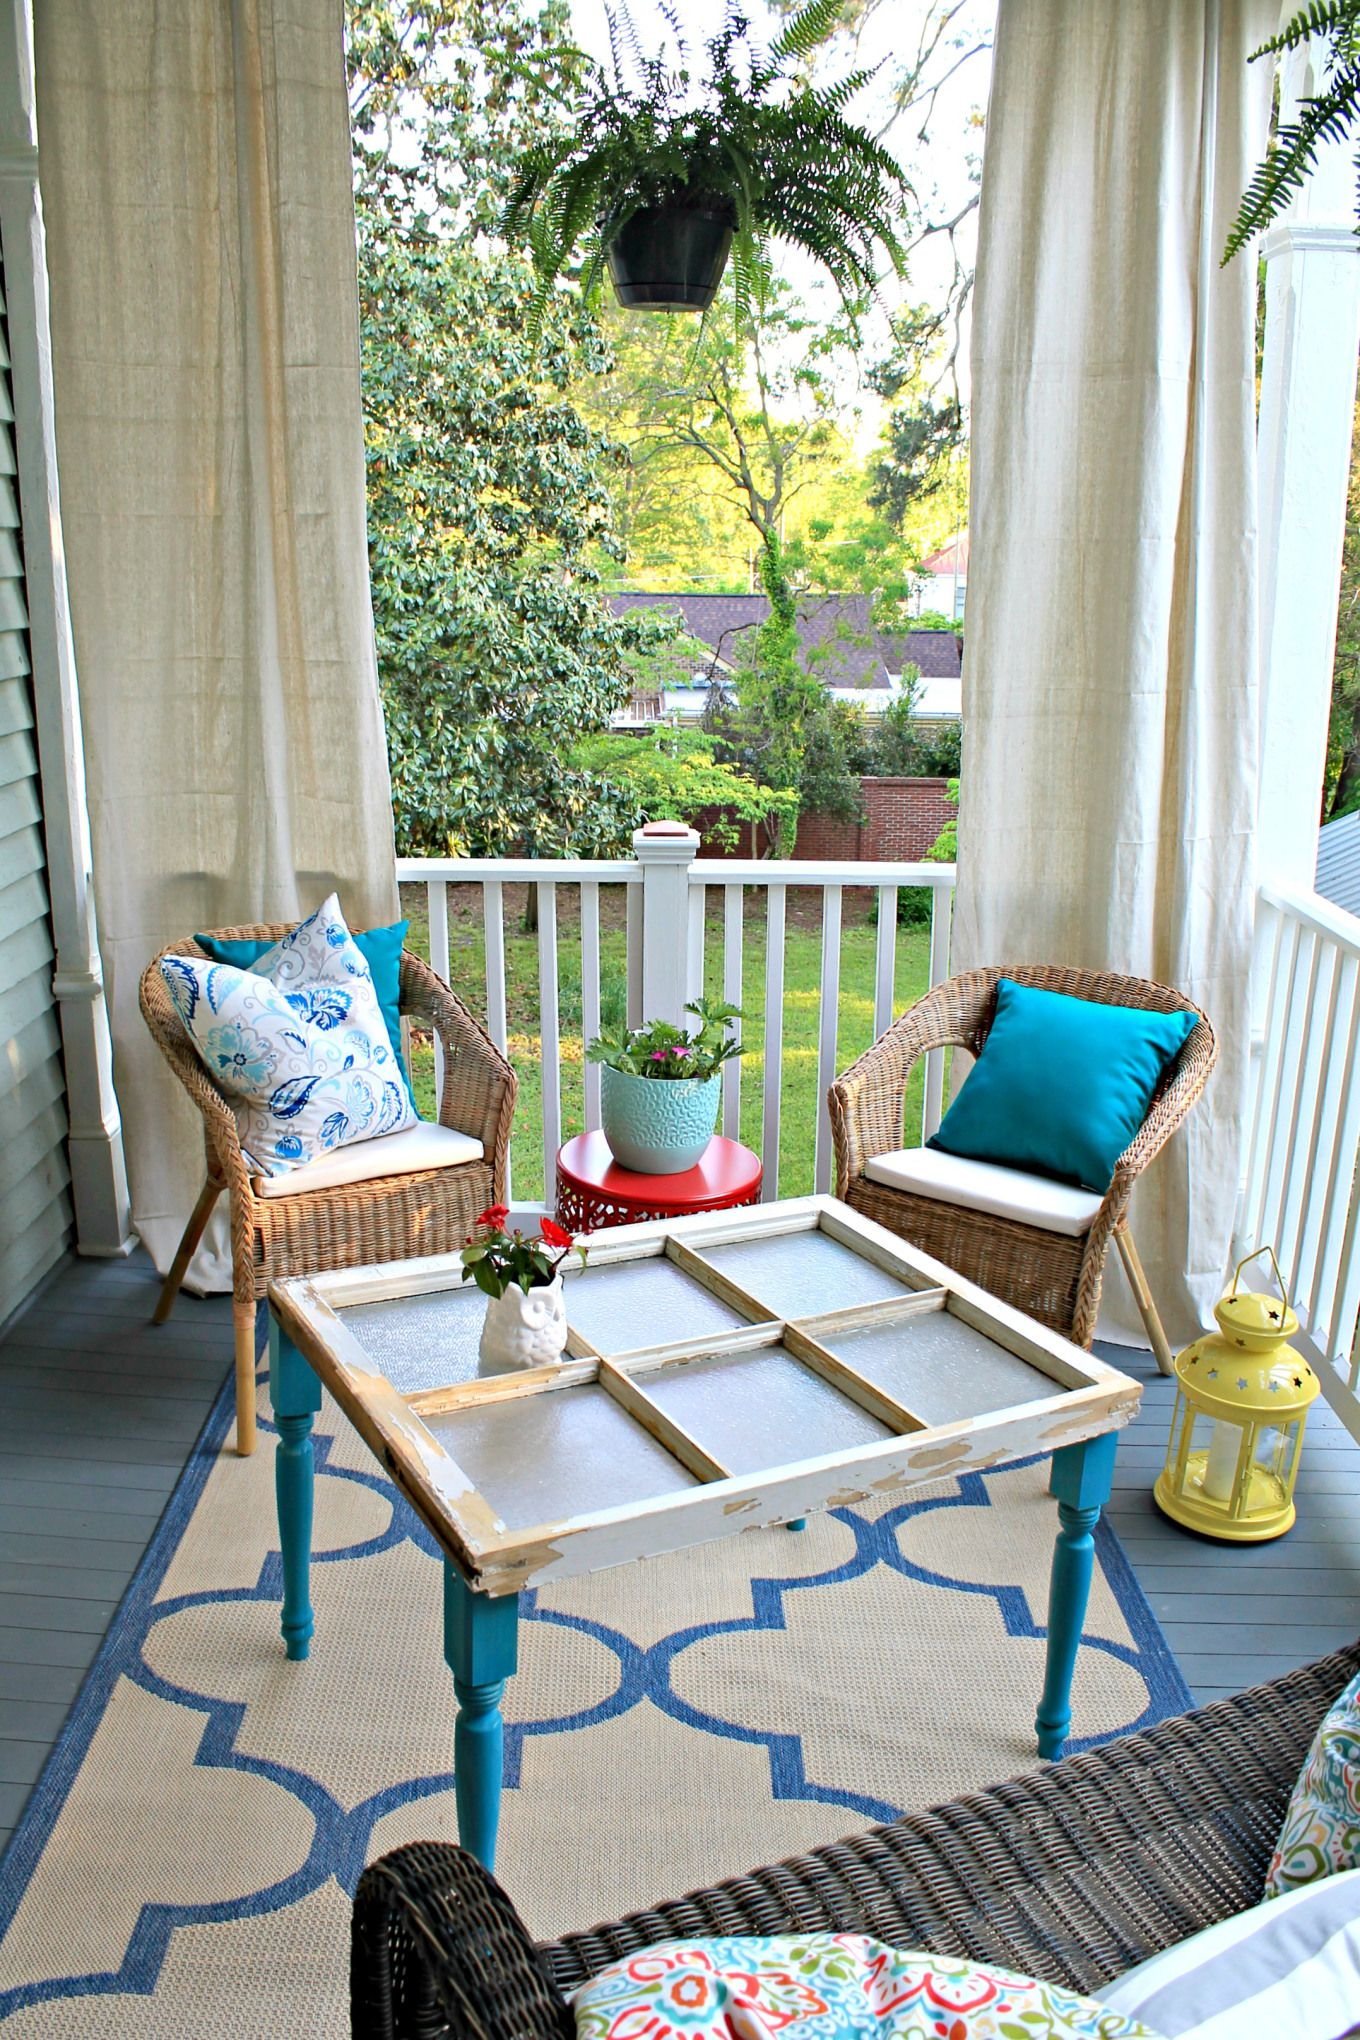 This Sunny Porch Went From Worn to Wonderful